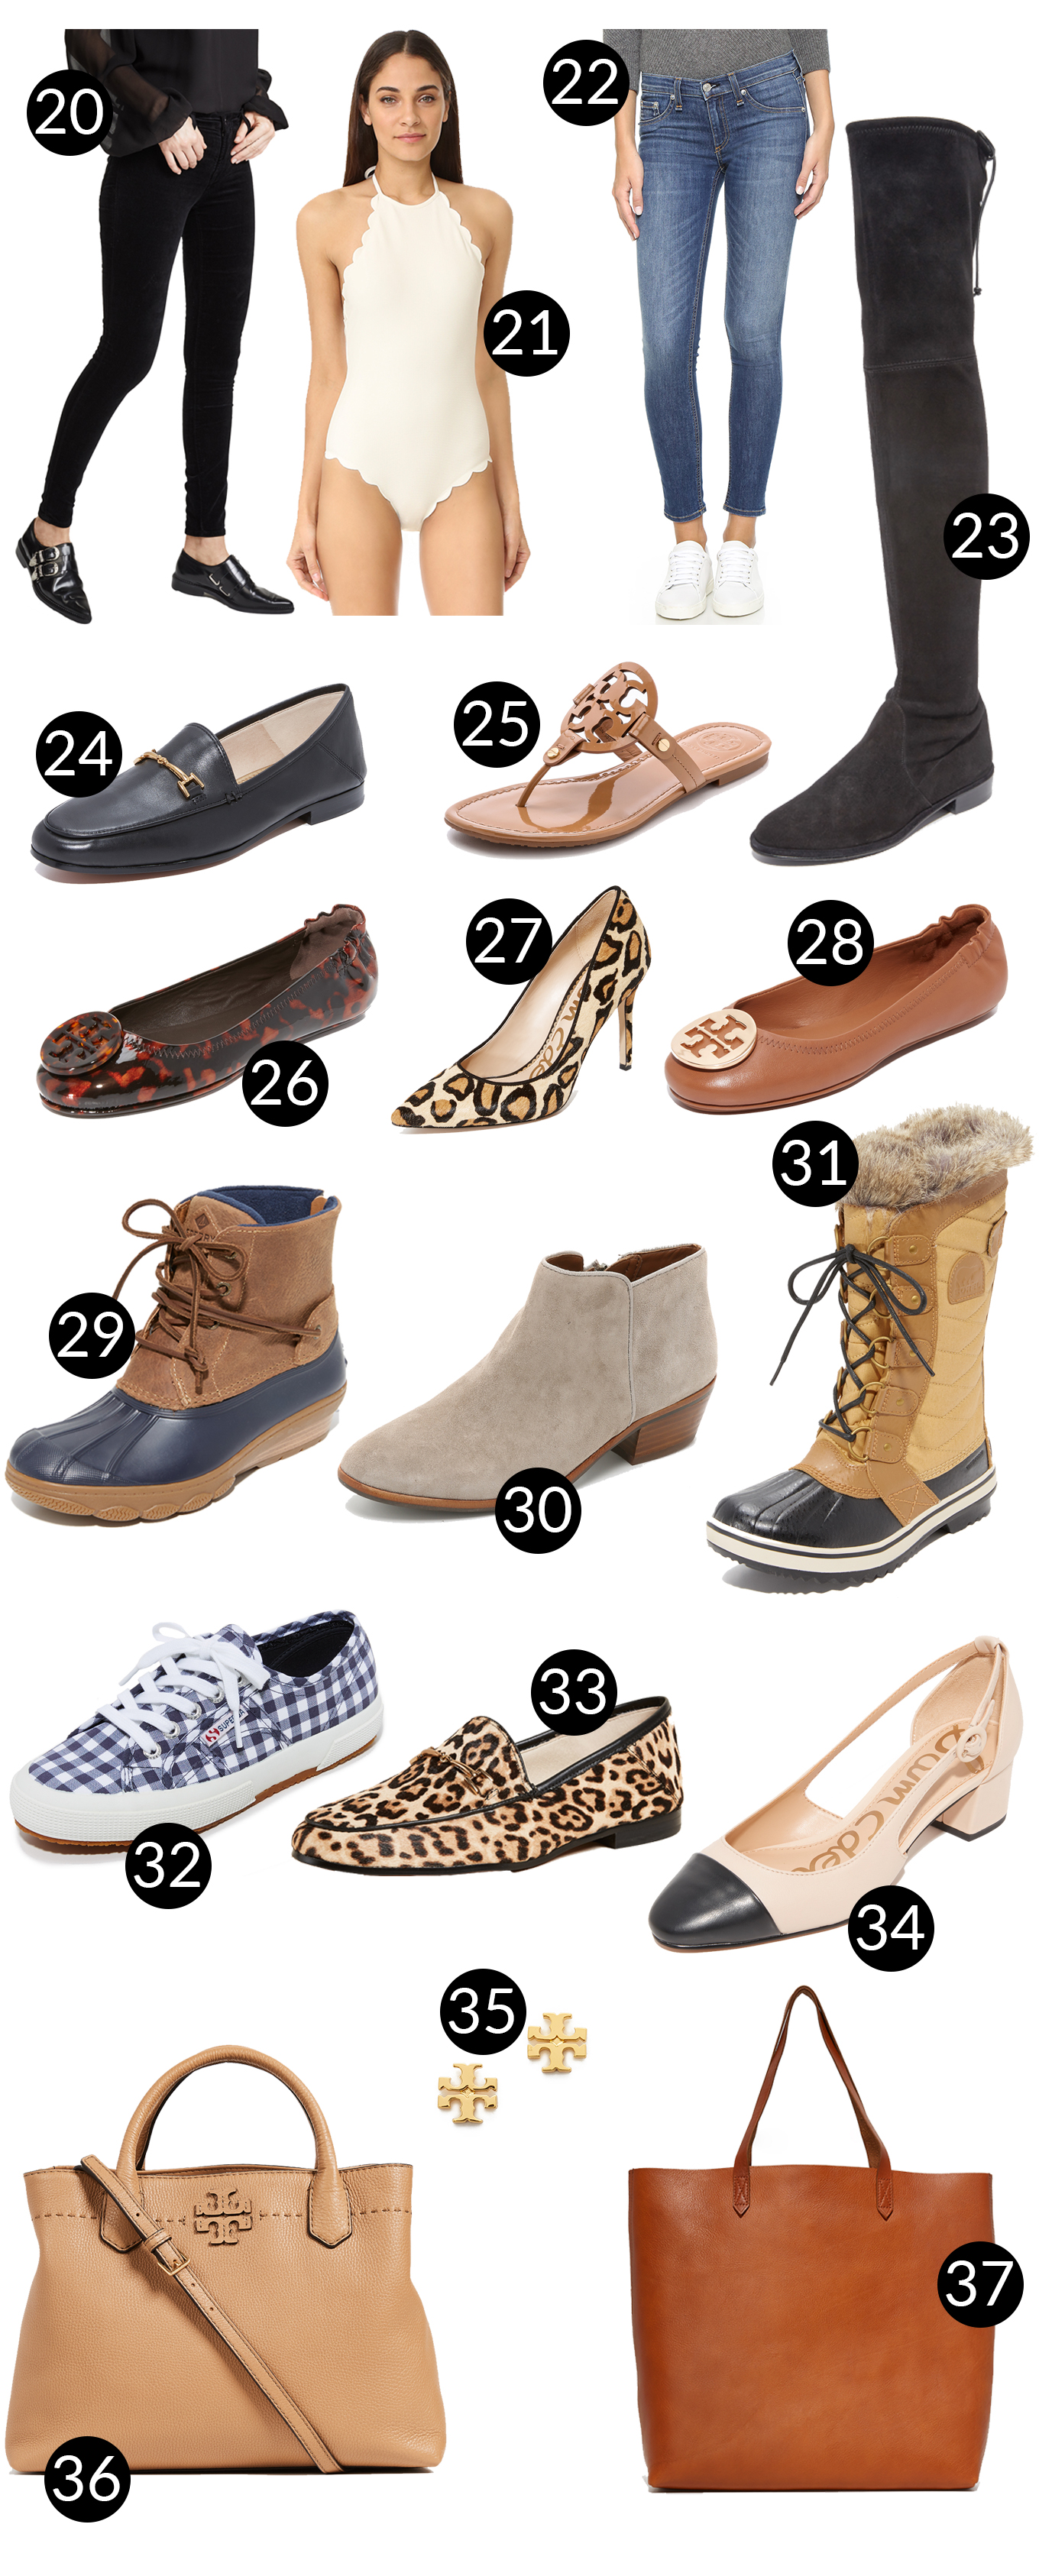 Shopbop Sale - Kelly in the City